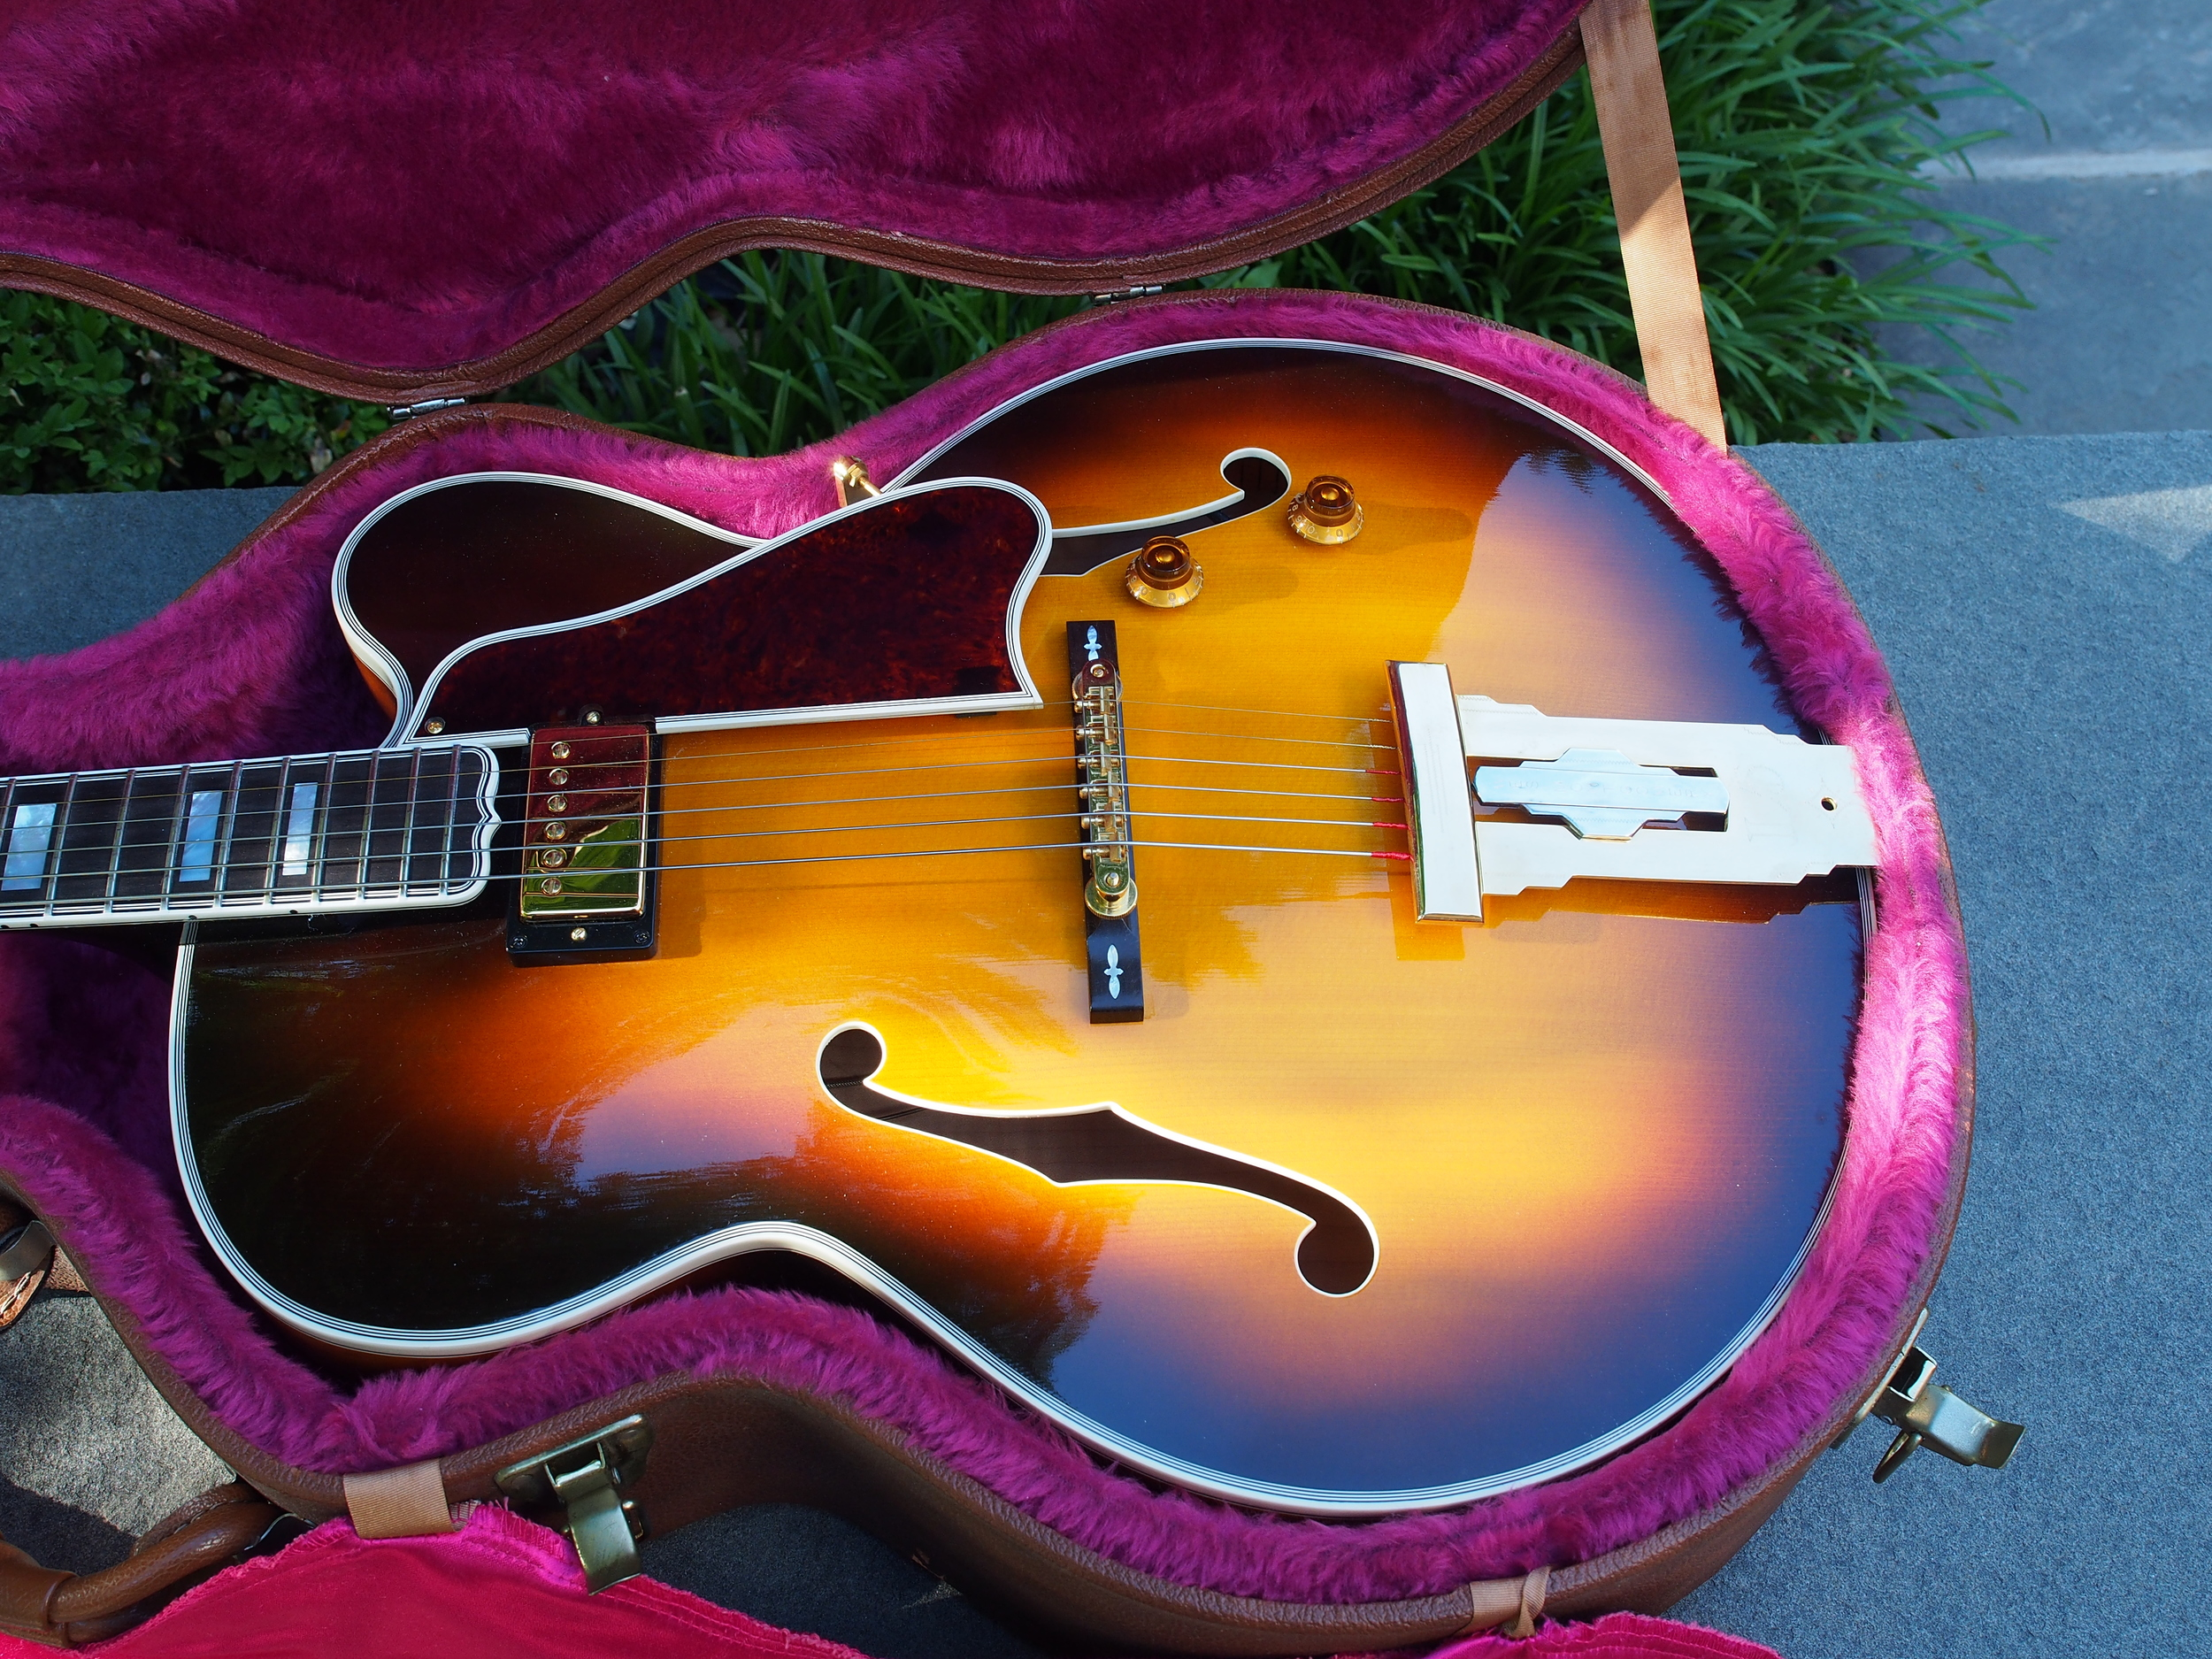 Gibson Custom Shop 1997 L5 Jazz Archtop - Jim Hutchins signed- Sold